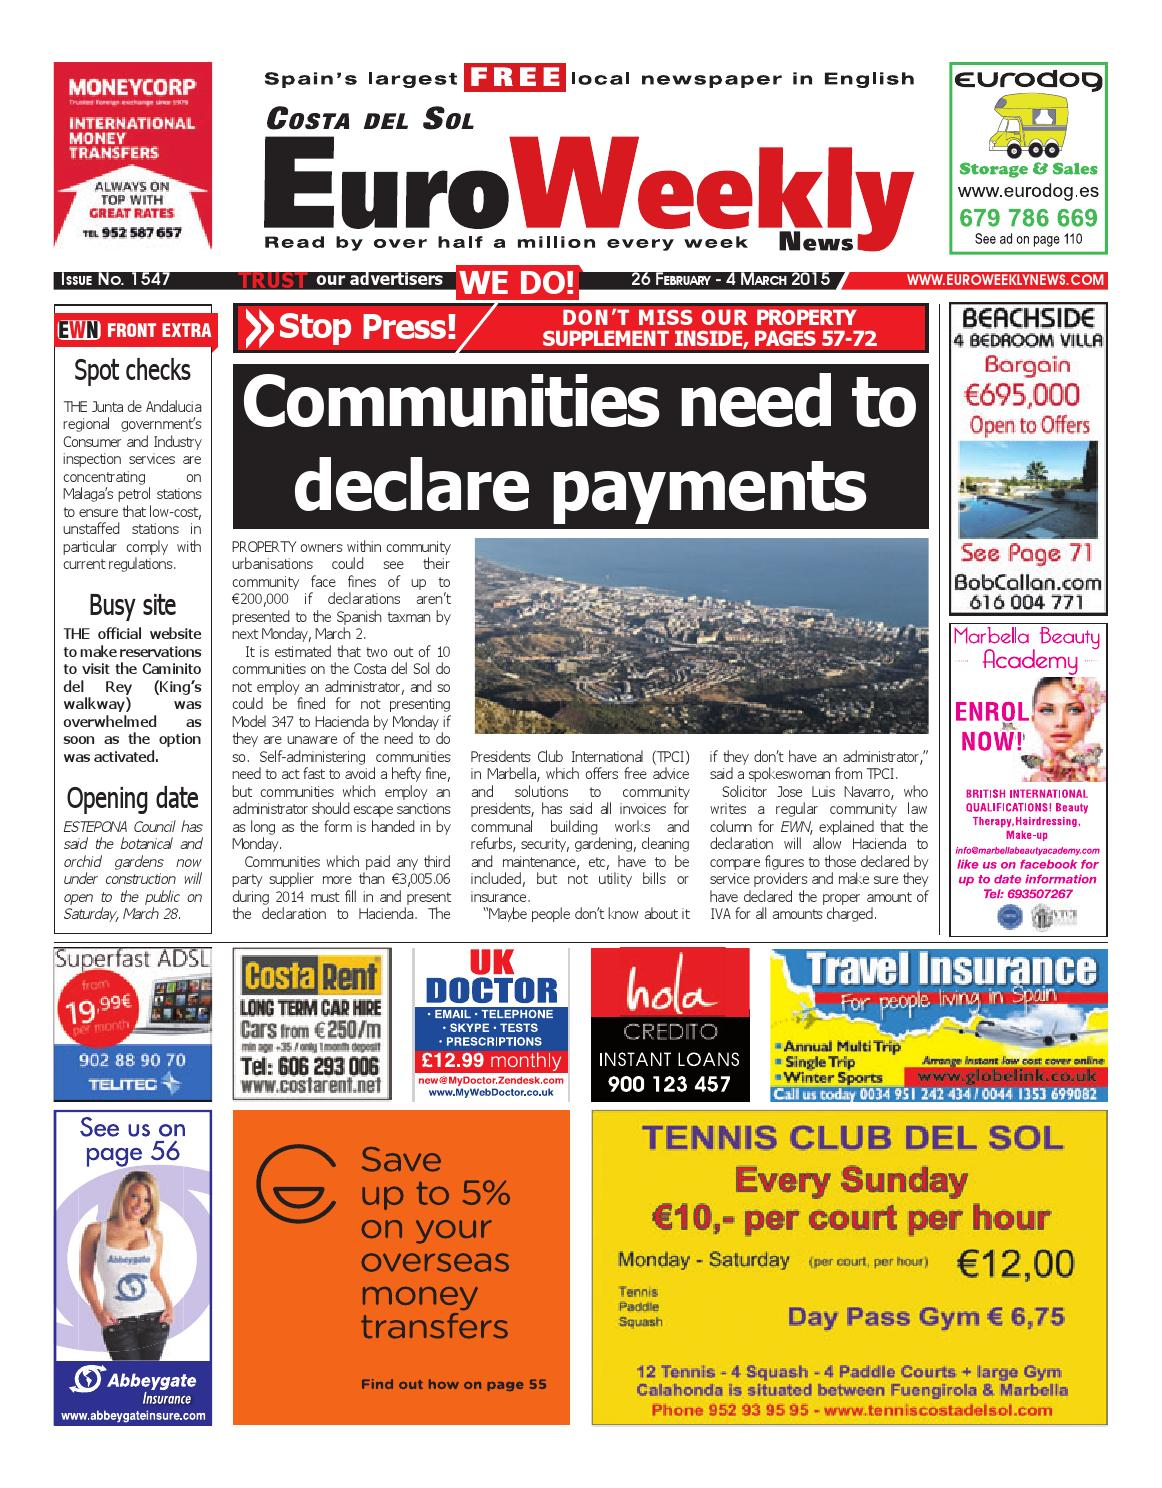 Euro Weekly News - Costa del Sol 26 February - 4 March 2015 Issue 1547